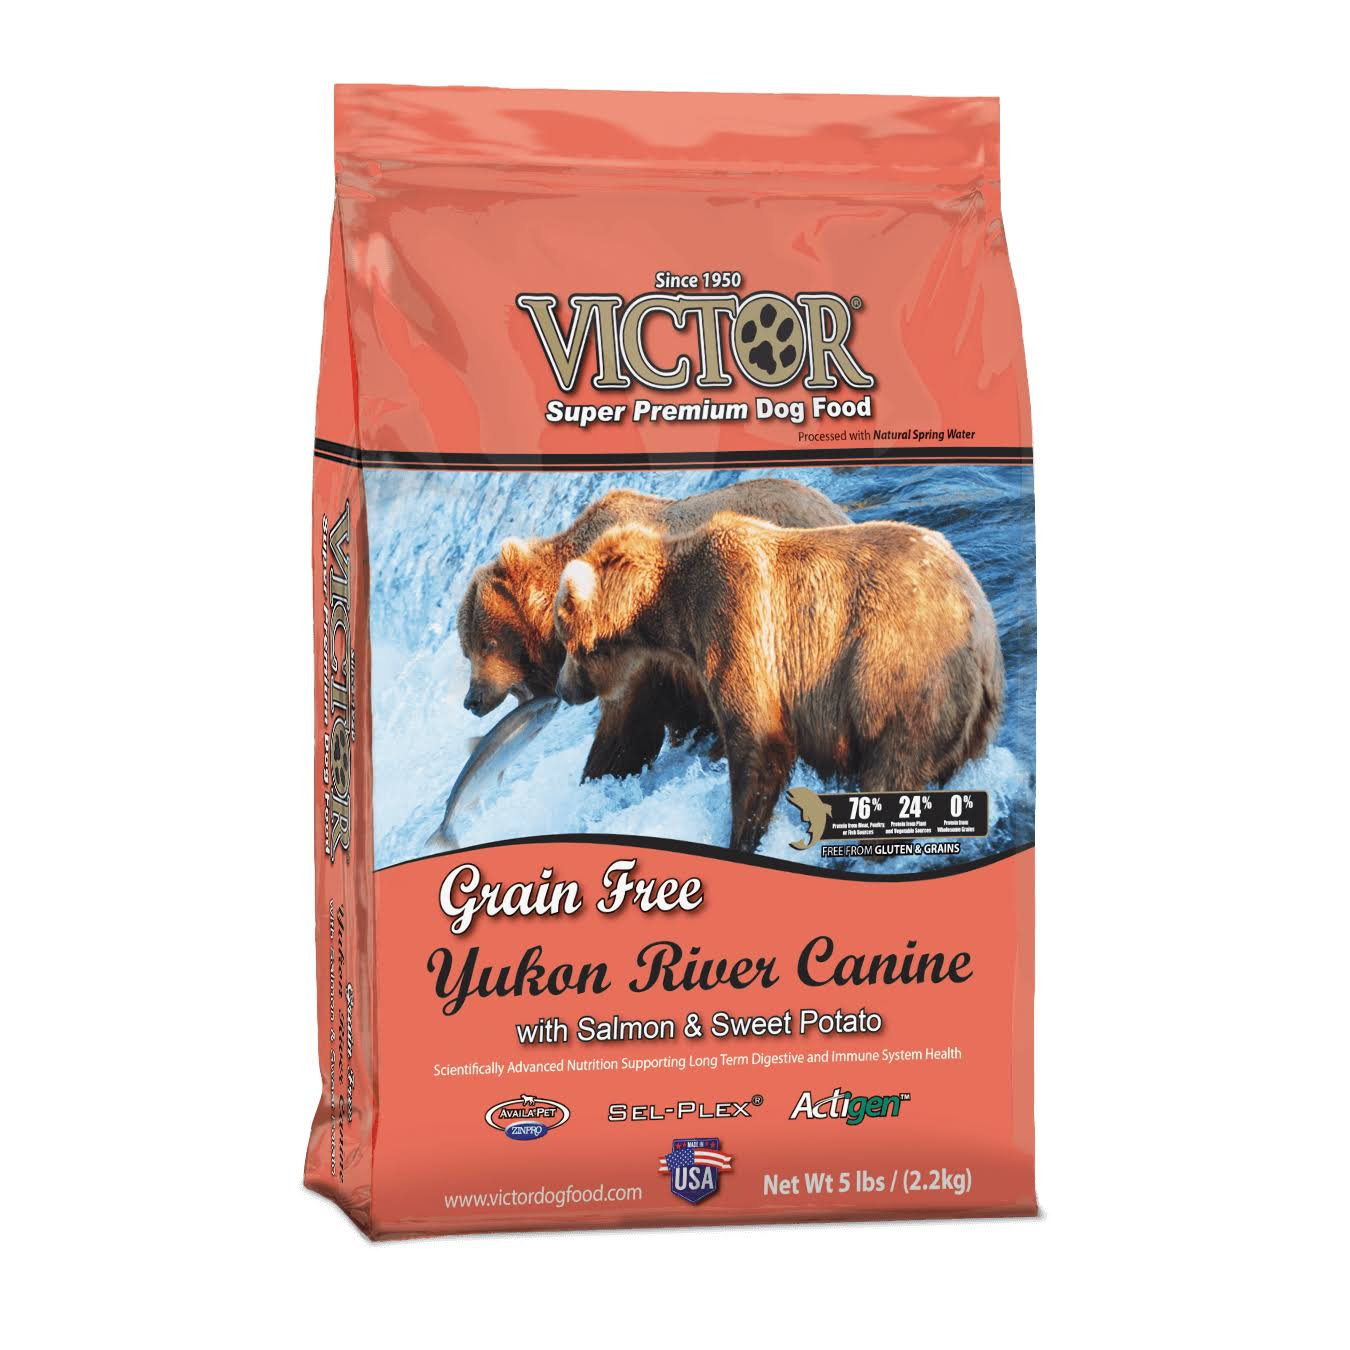 Victor Yukon River Canine Dog Food - Salmon and Sweet Potato, 5lbs